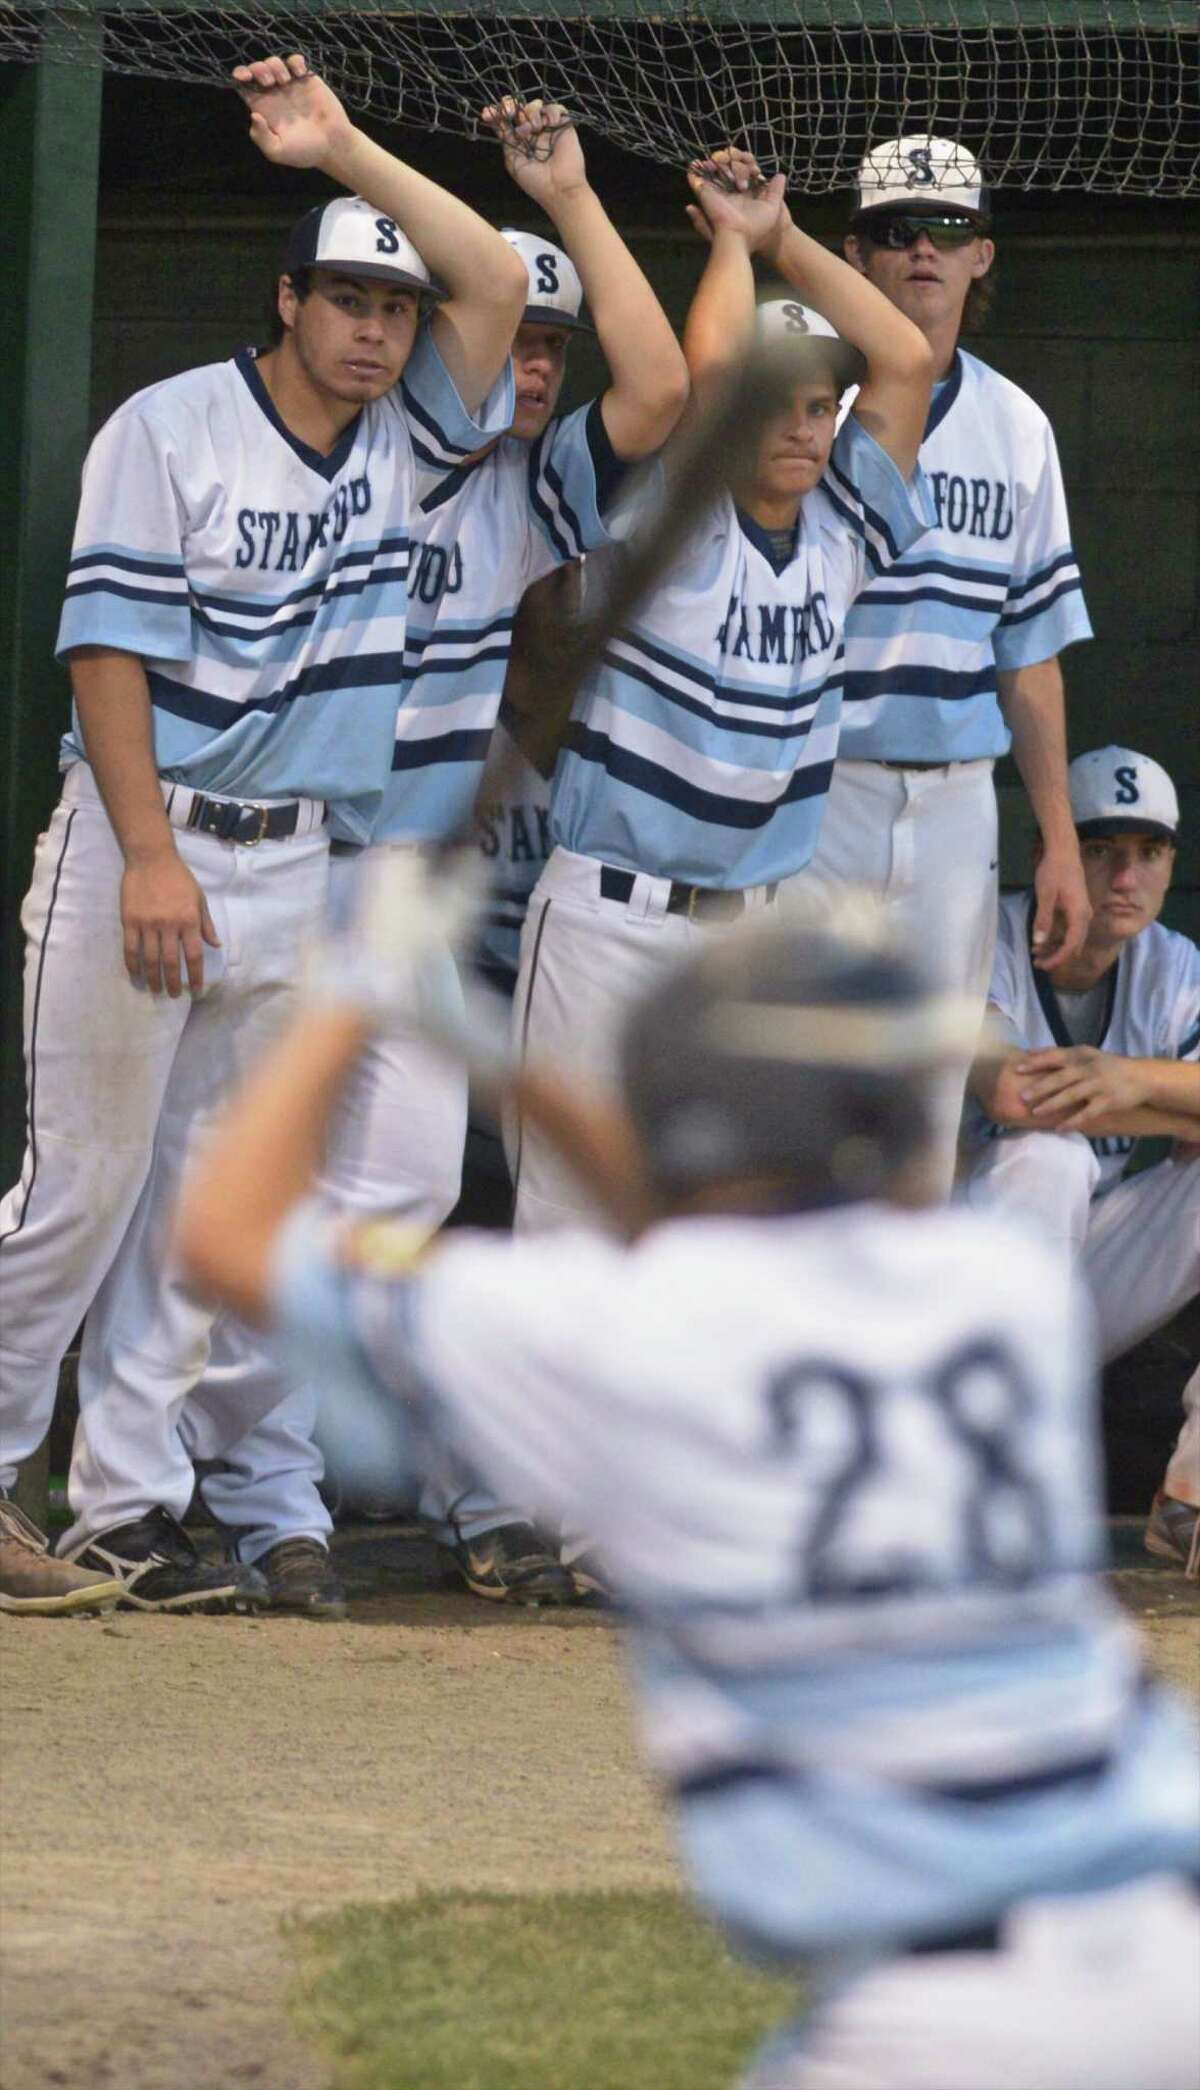 Sr. Legion Southeast Division Legion championship baseball game between Waterbury and Stamford at Palmer Field, in Middletown, Conn, on Tuesday, July 28, 2015.